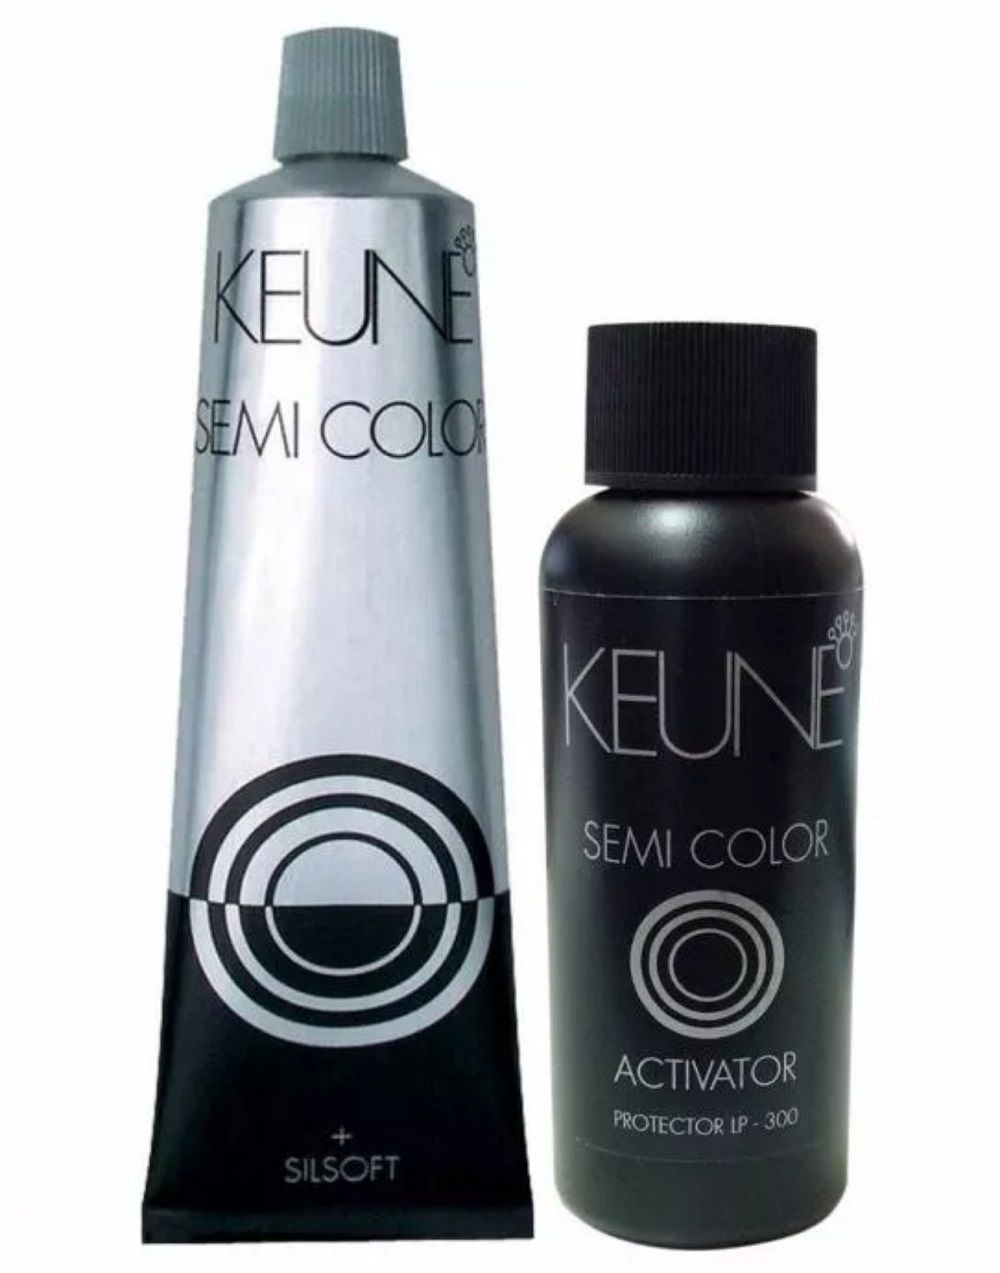 Kit Keune Semi Color 60ml - Cor Lilac + Activator 60 ml